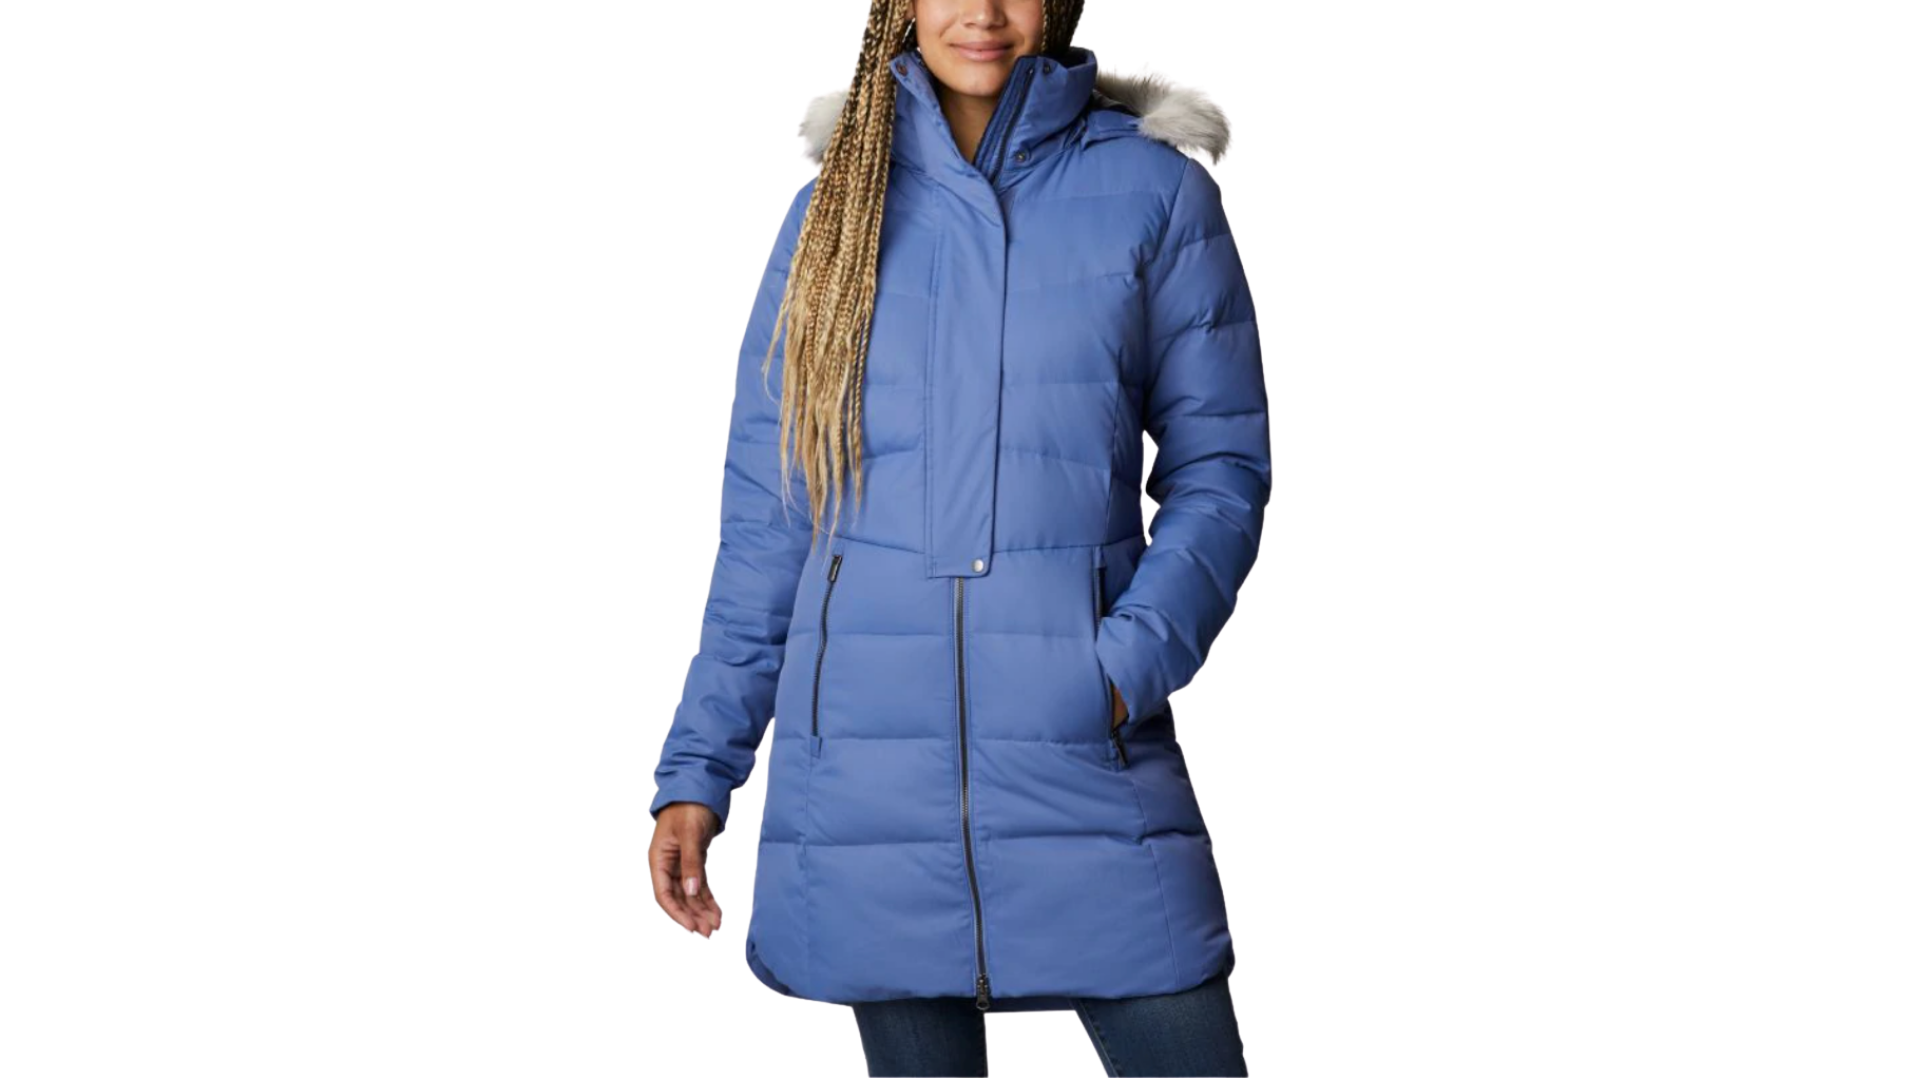 mid length coat best women's winter coats for extreme cold